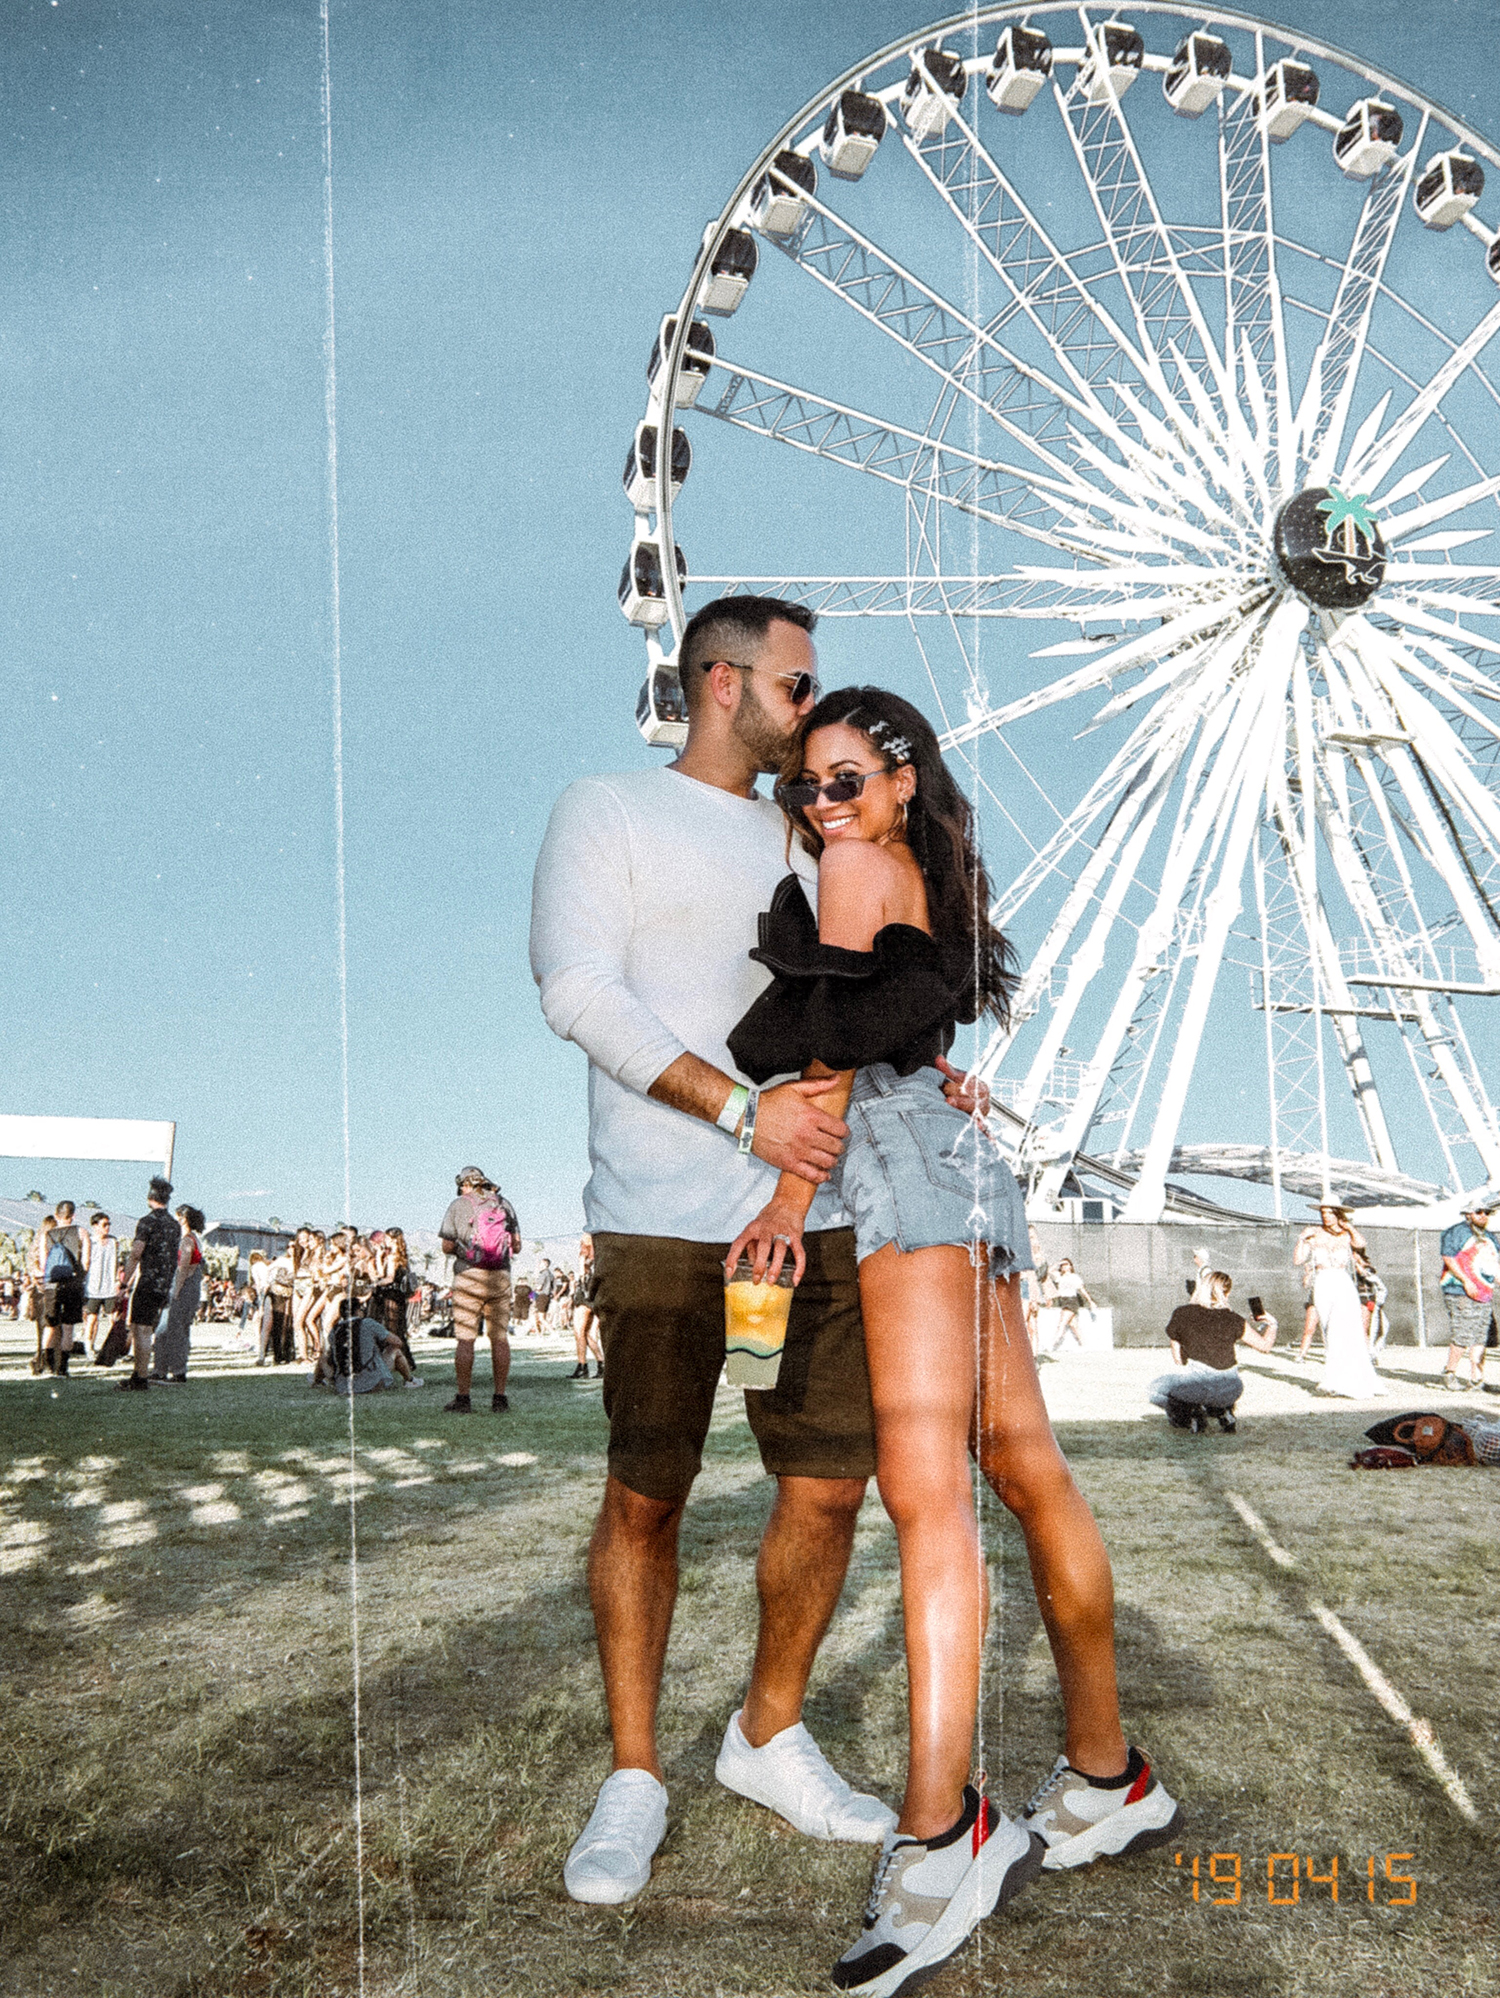 Jessi Malay husband coachella 2019